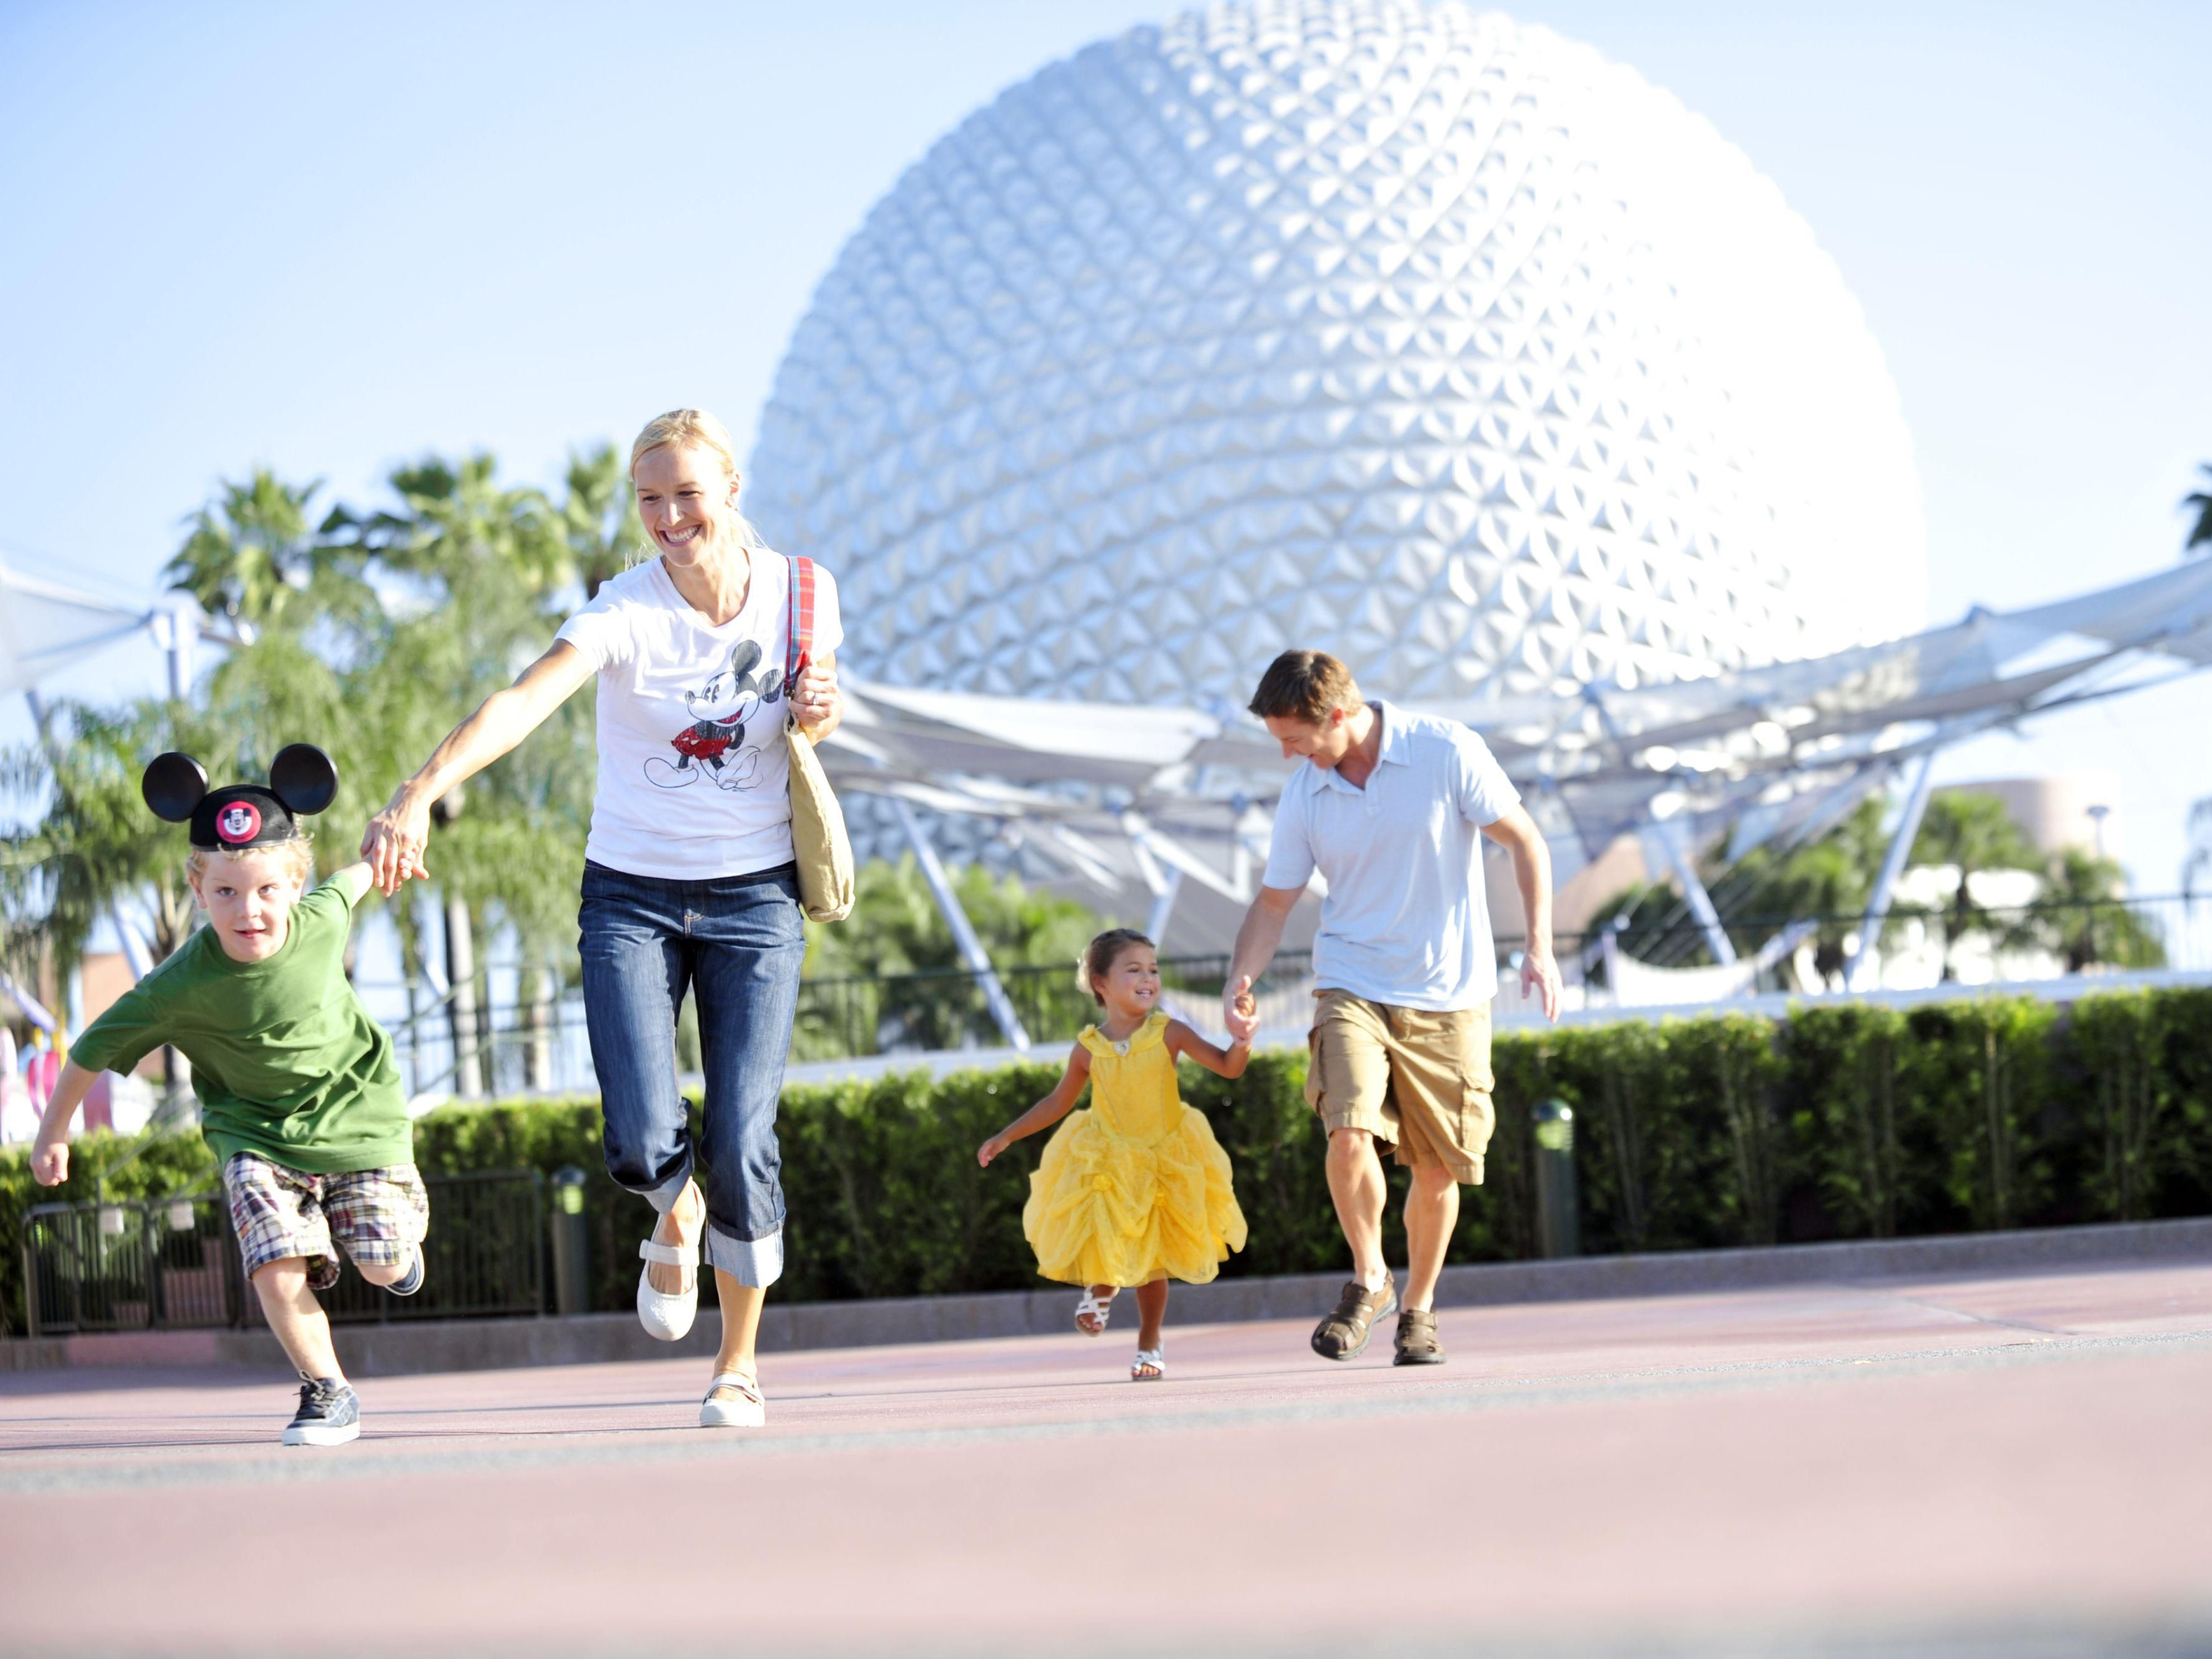 A great family day at Epcot